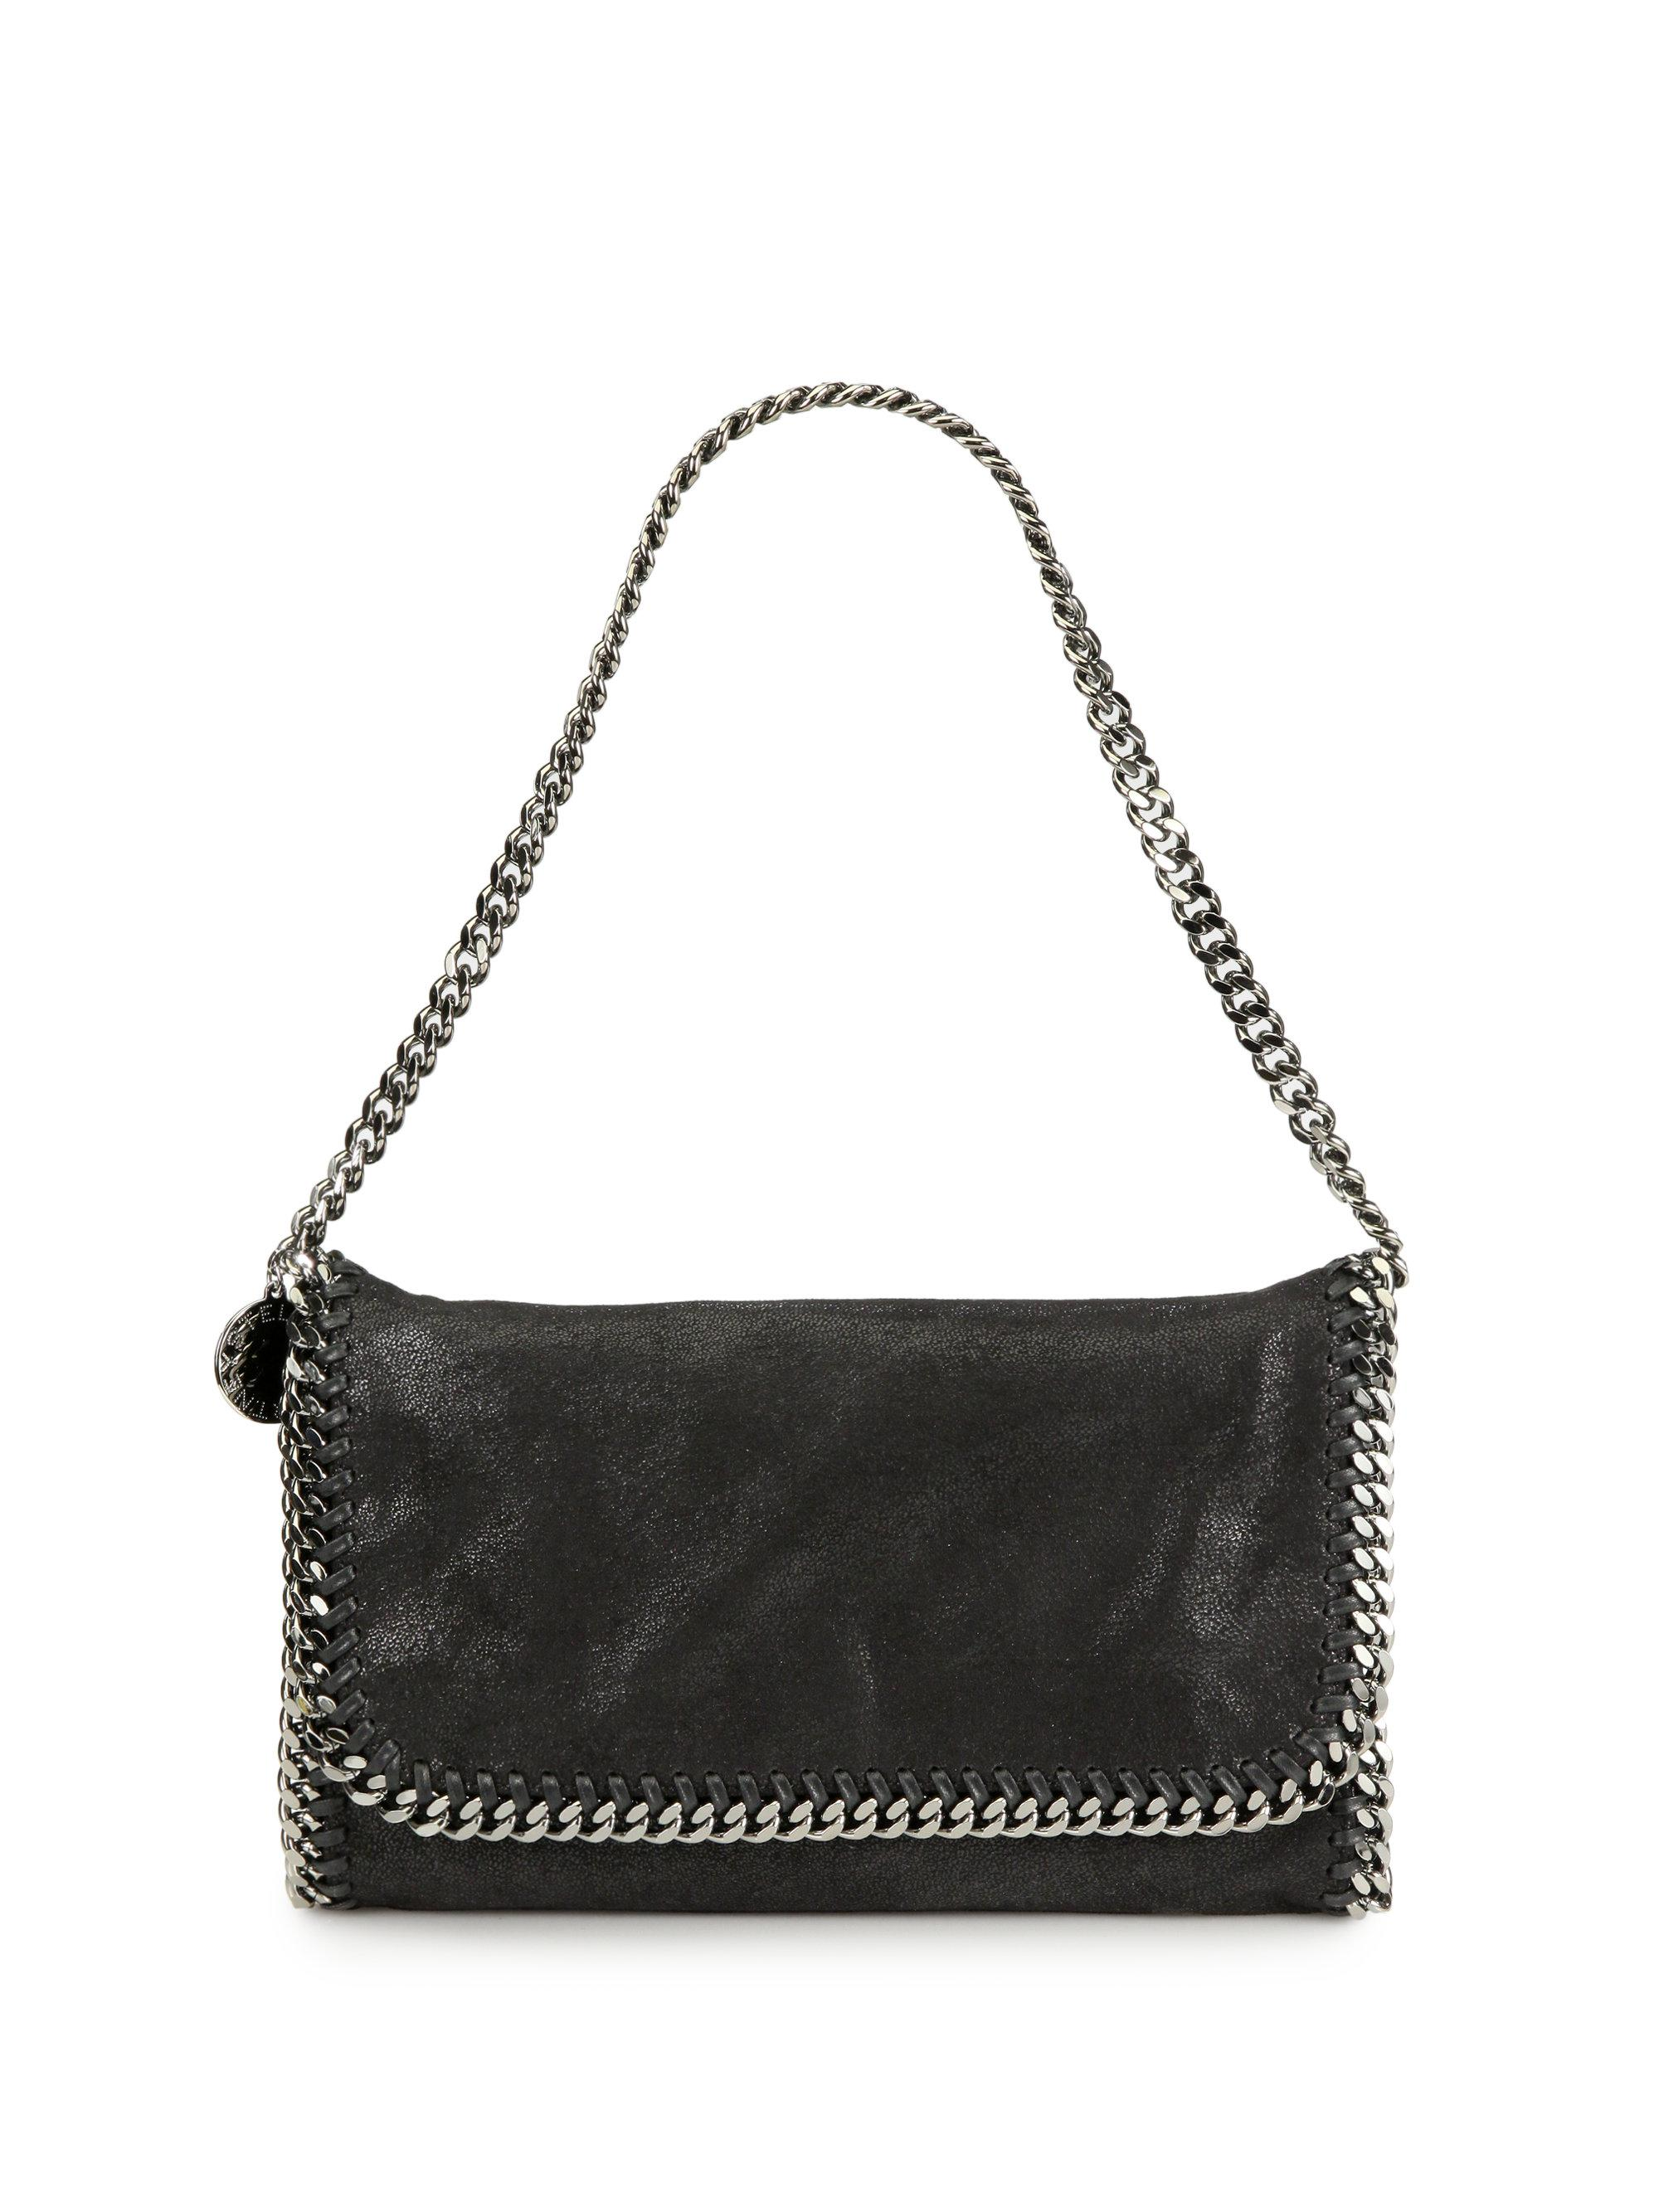 With Credit Card Online Buy Cheap New Falabella foldover shoulder bag - Black Stella McCartney Where To Buy Low Shipping Cheap Online 2jpD3